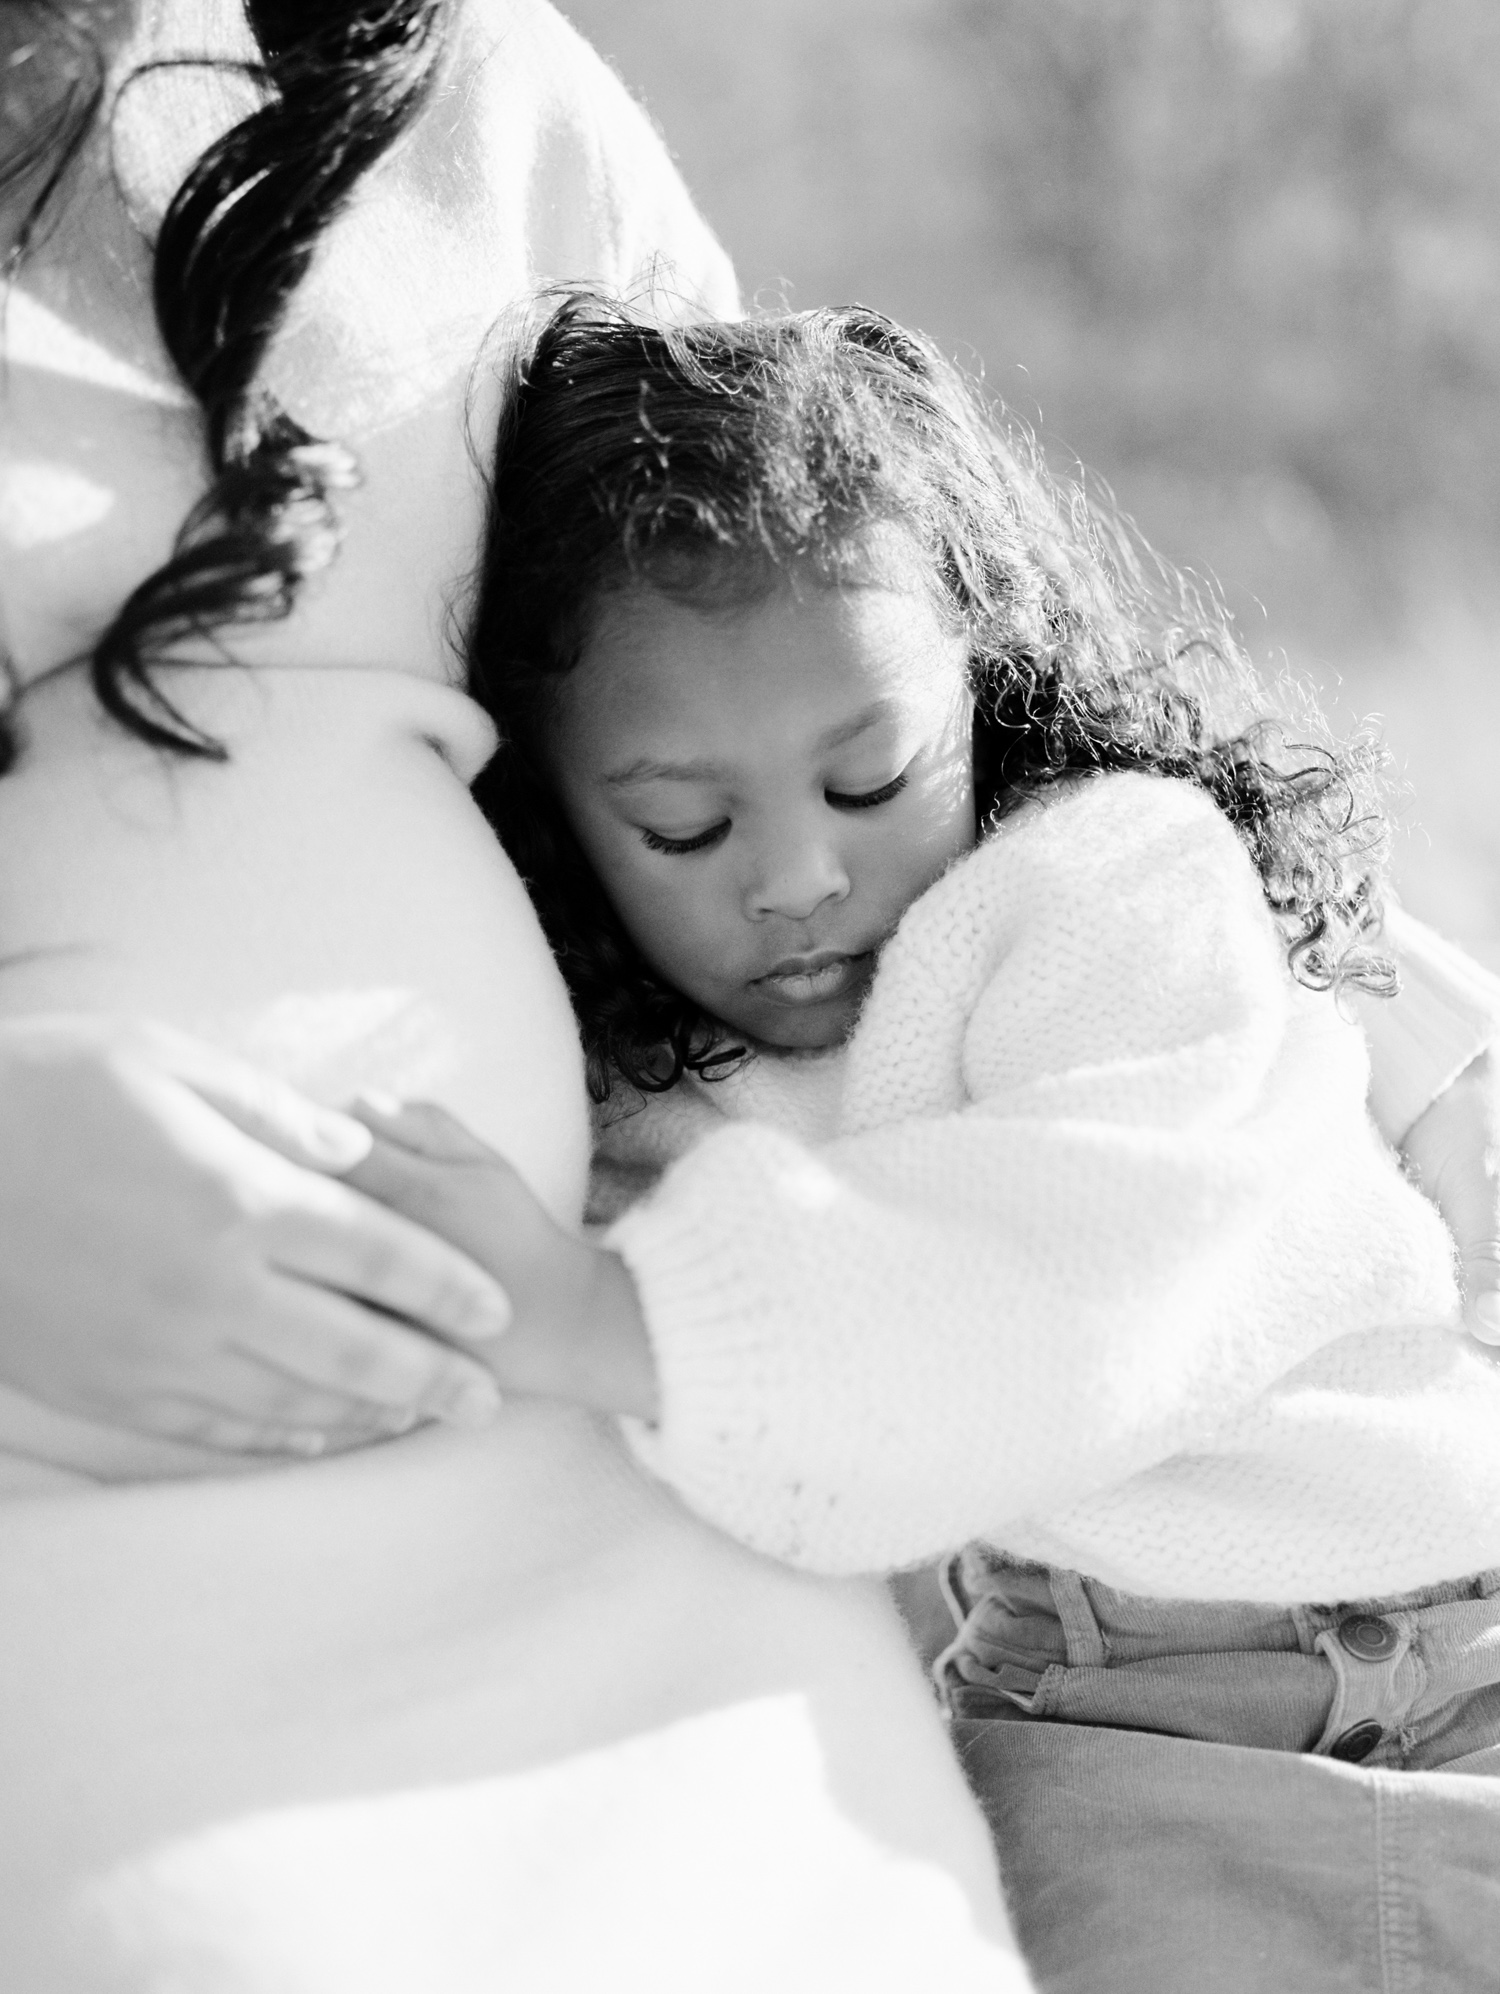 A little girl quietly hugs her mother's pregnant belly during a mother-daughter maternity photoshoot on film in Michigan